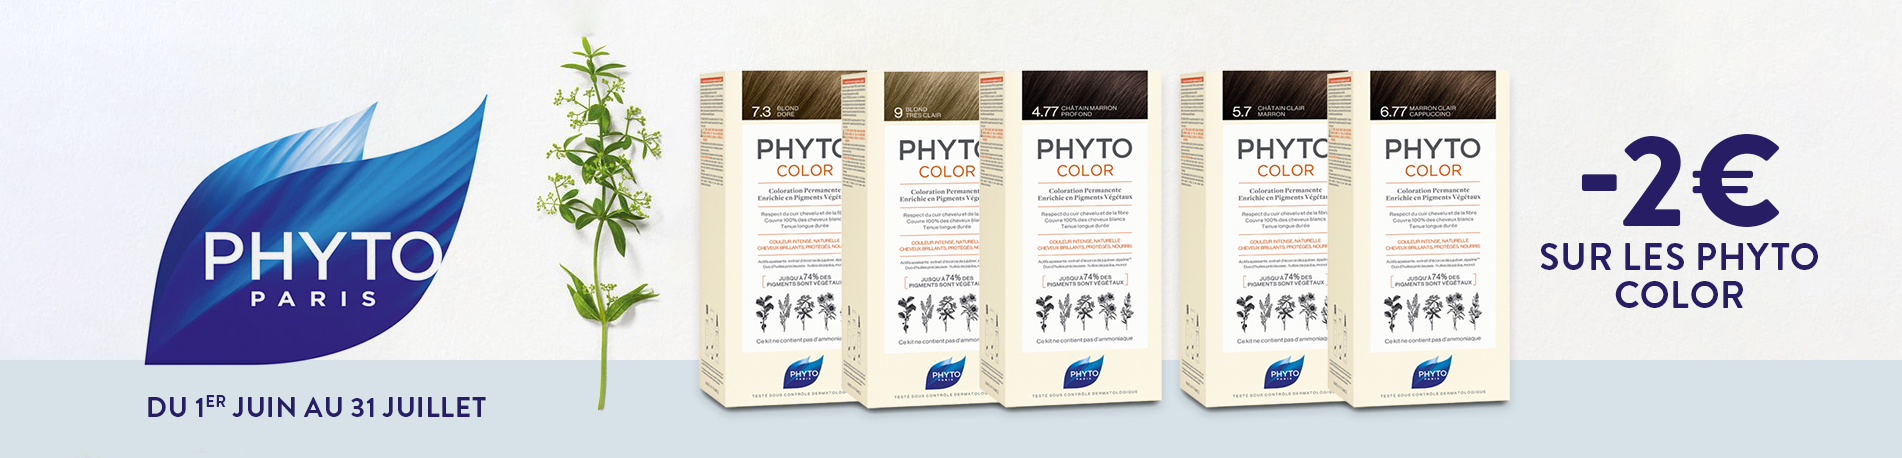 Promotion Phyto color